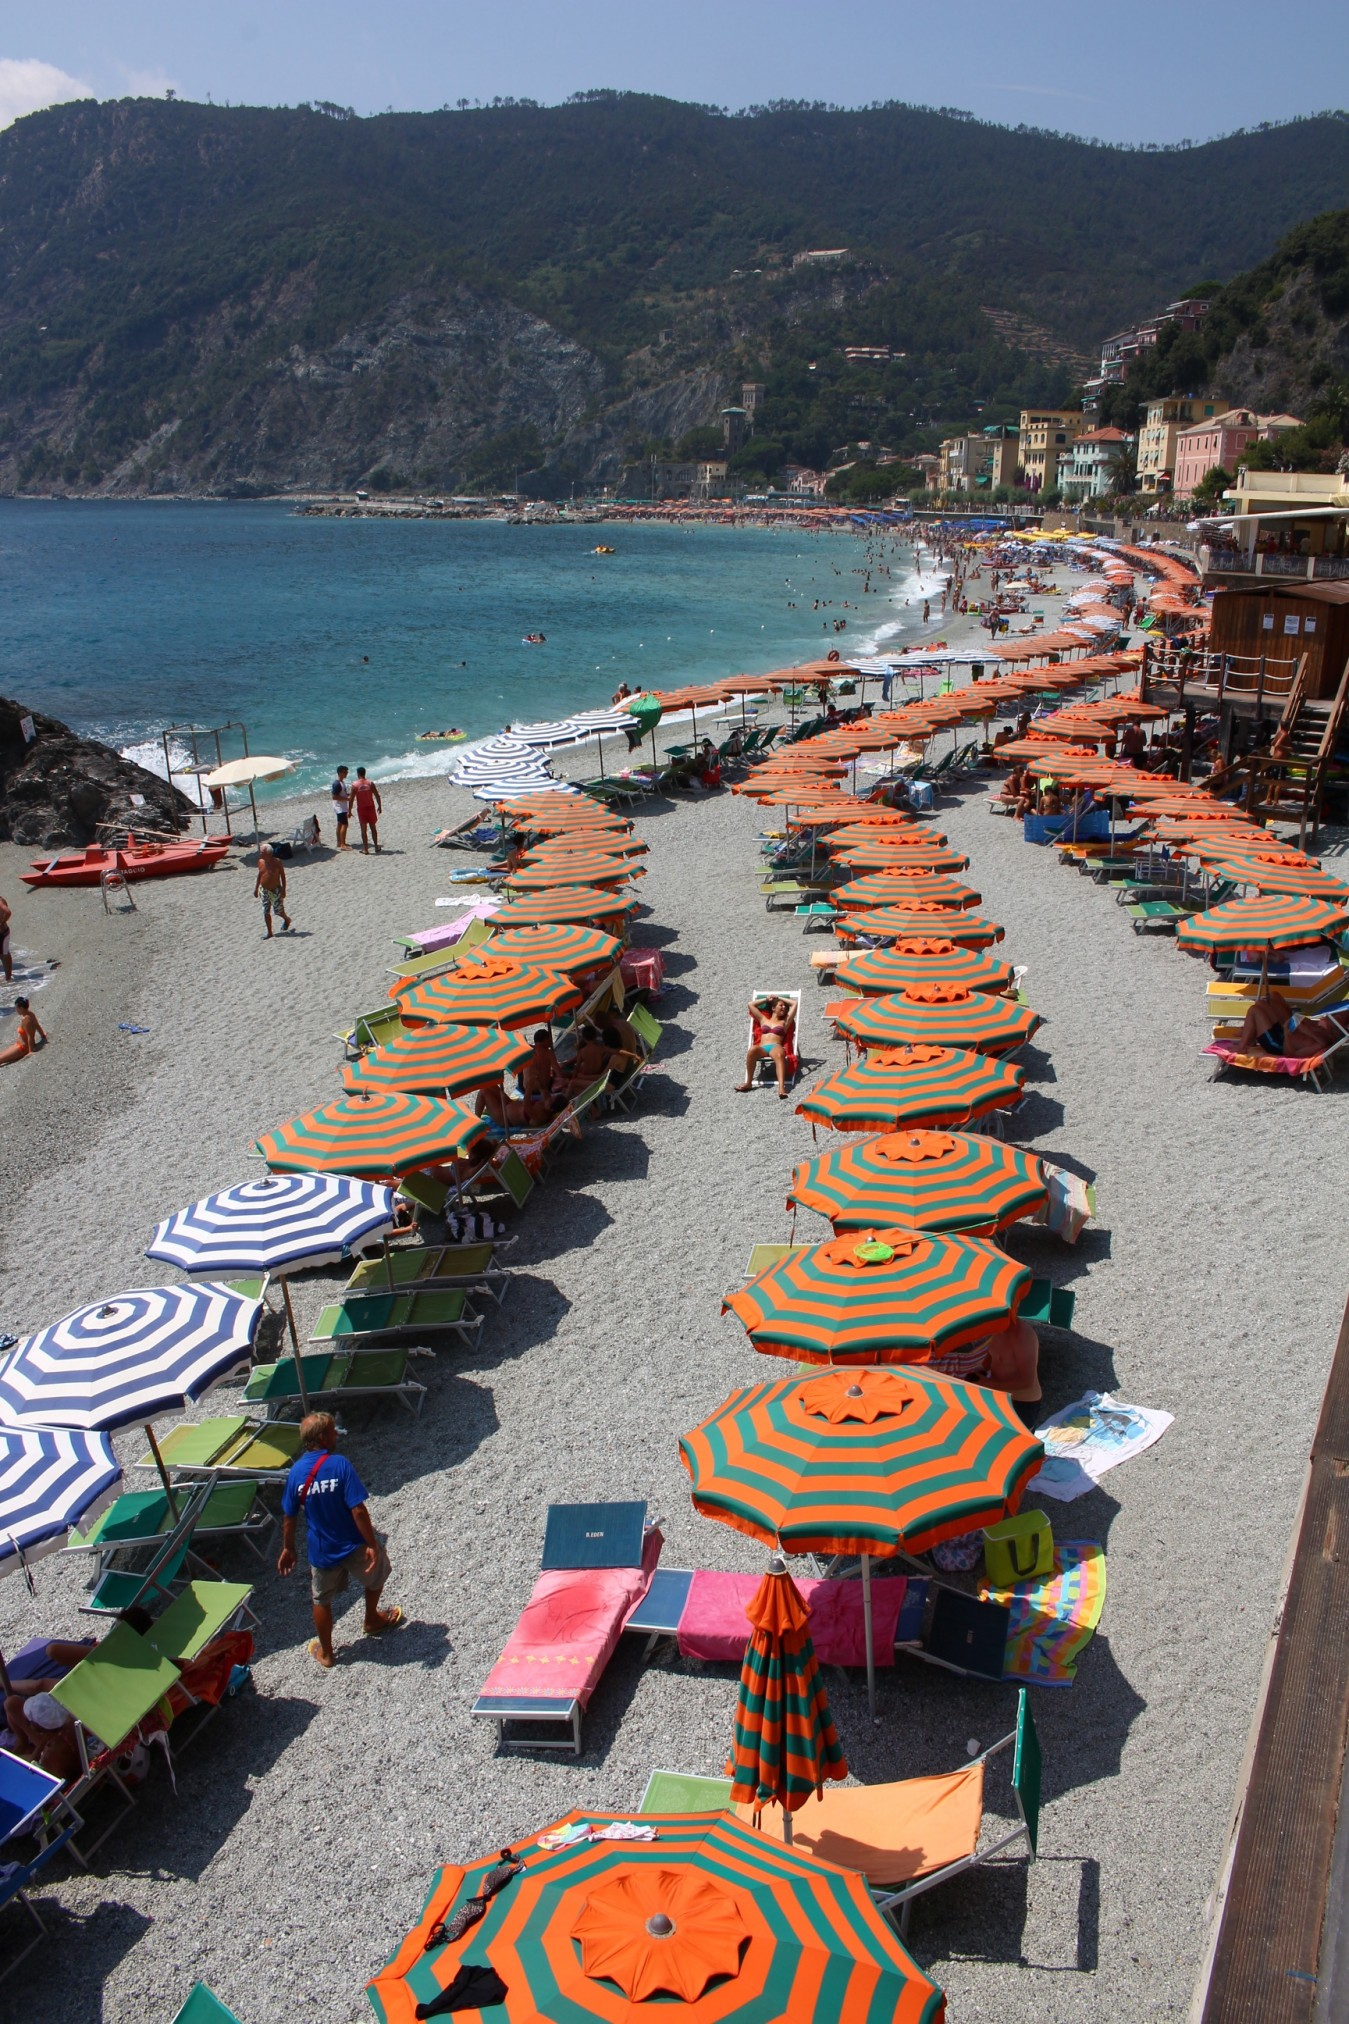 various colors of the beach umbrellas adorn the beach of Monterosso